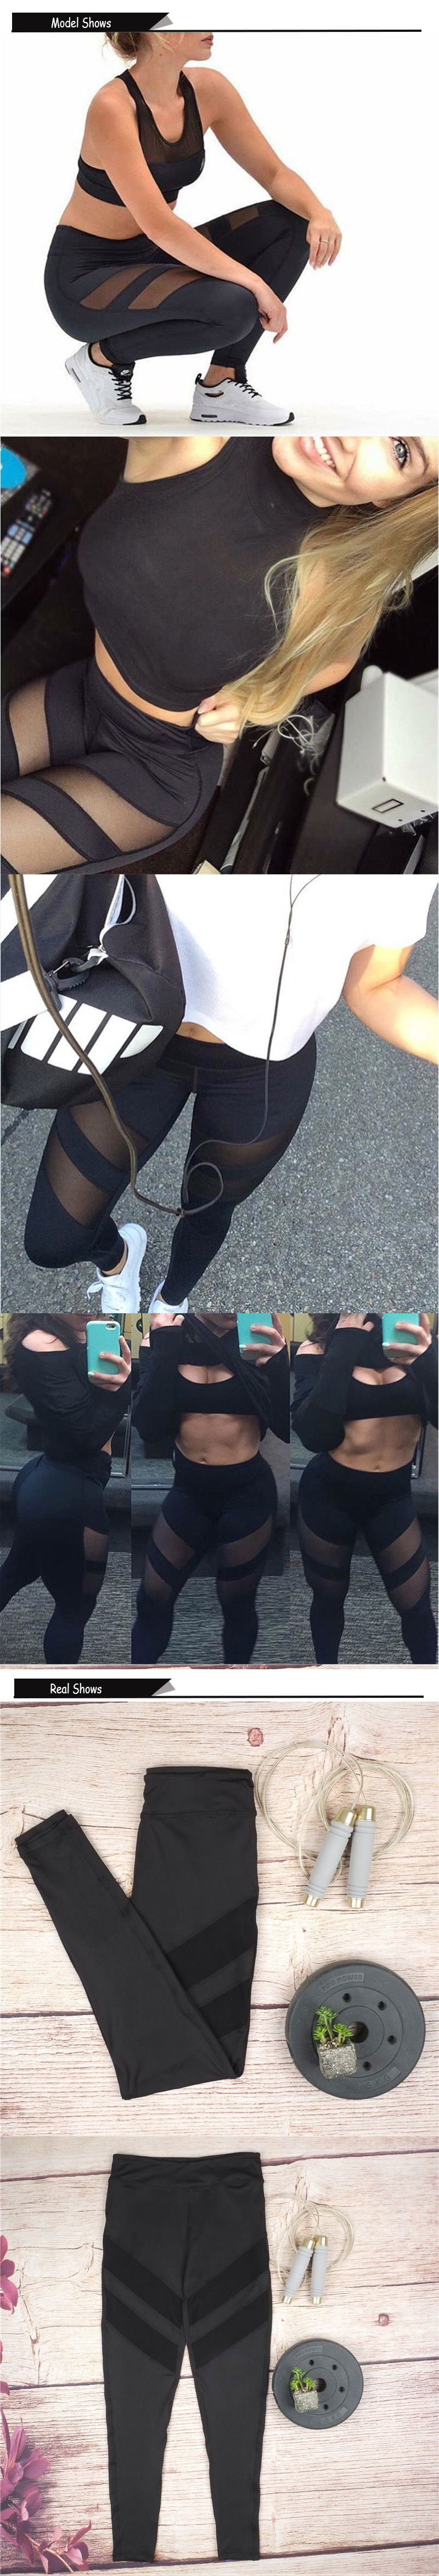 Ladies Mesh High Waist Workout Leggings Fitness Women Pants Breathable Push Up Leggings Women Quick Dry High Quality Leggins 8